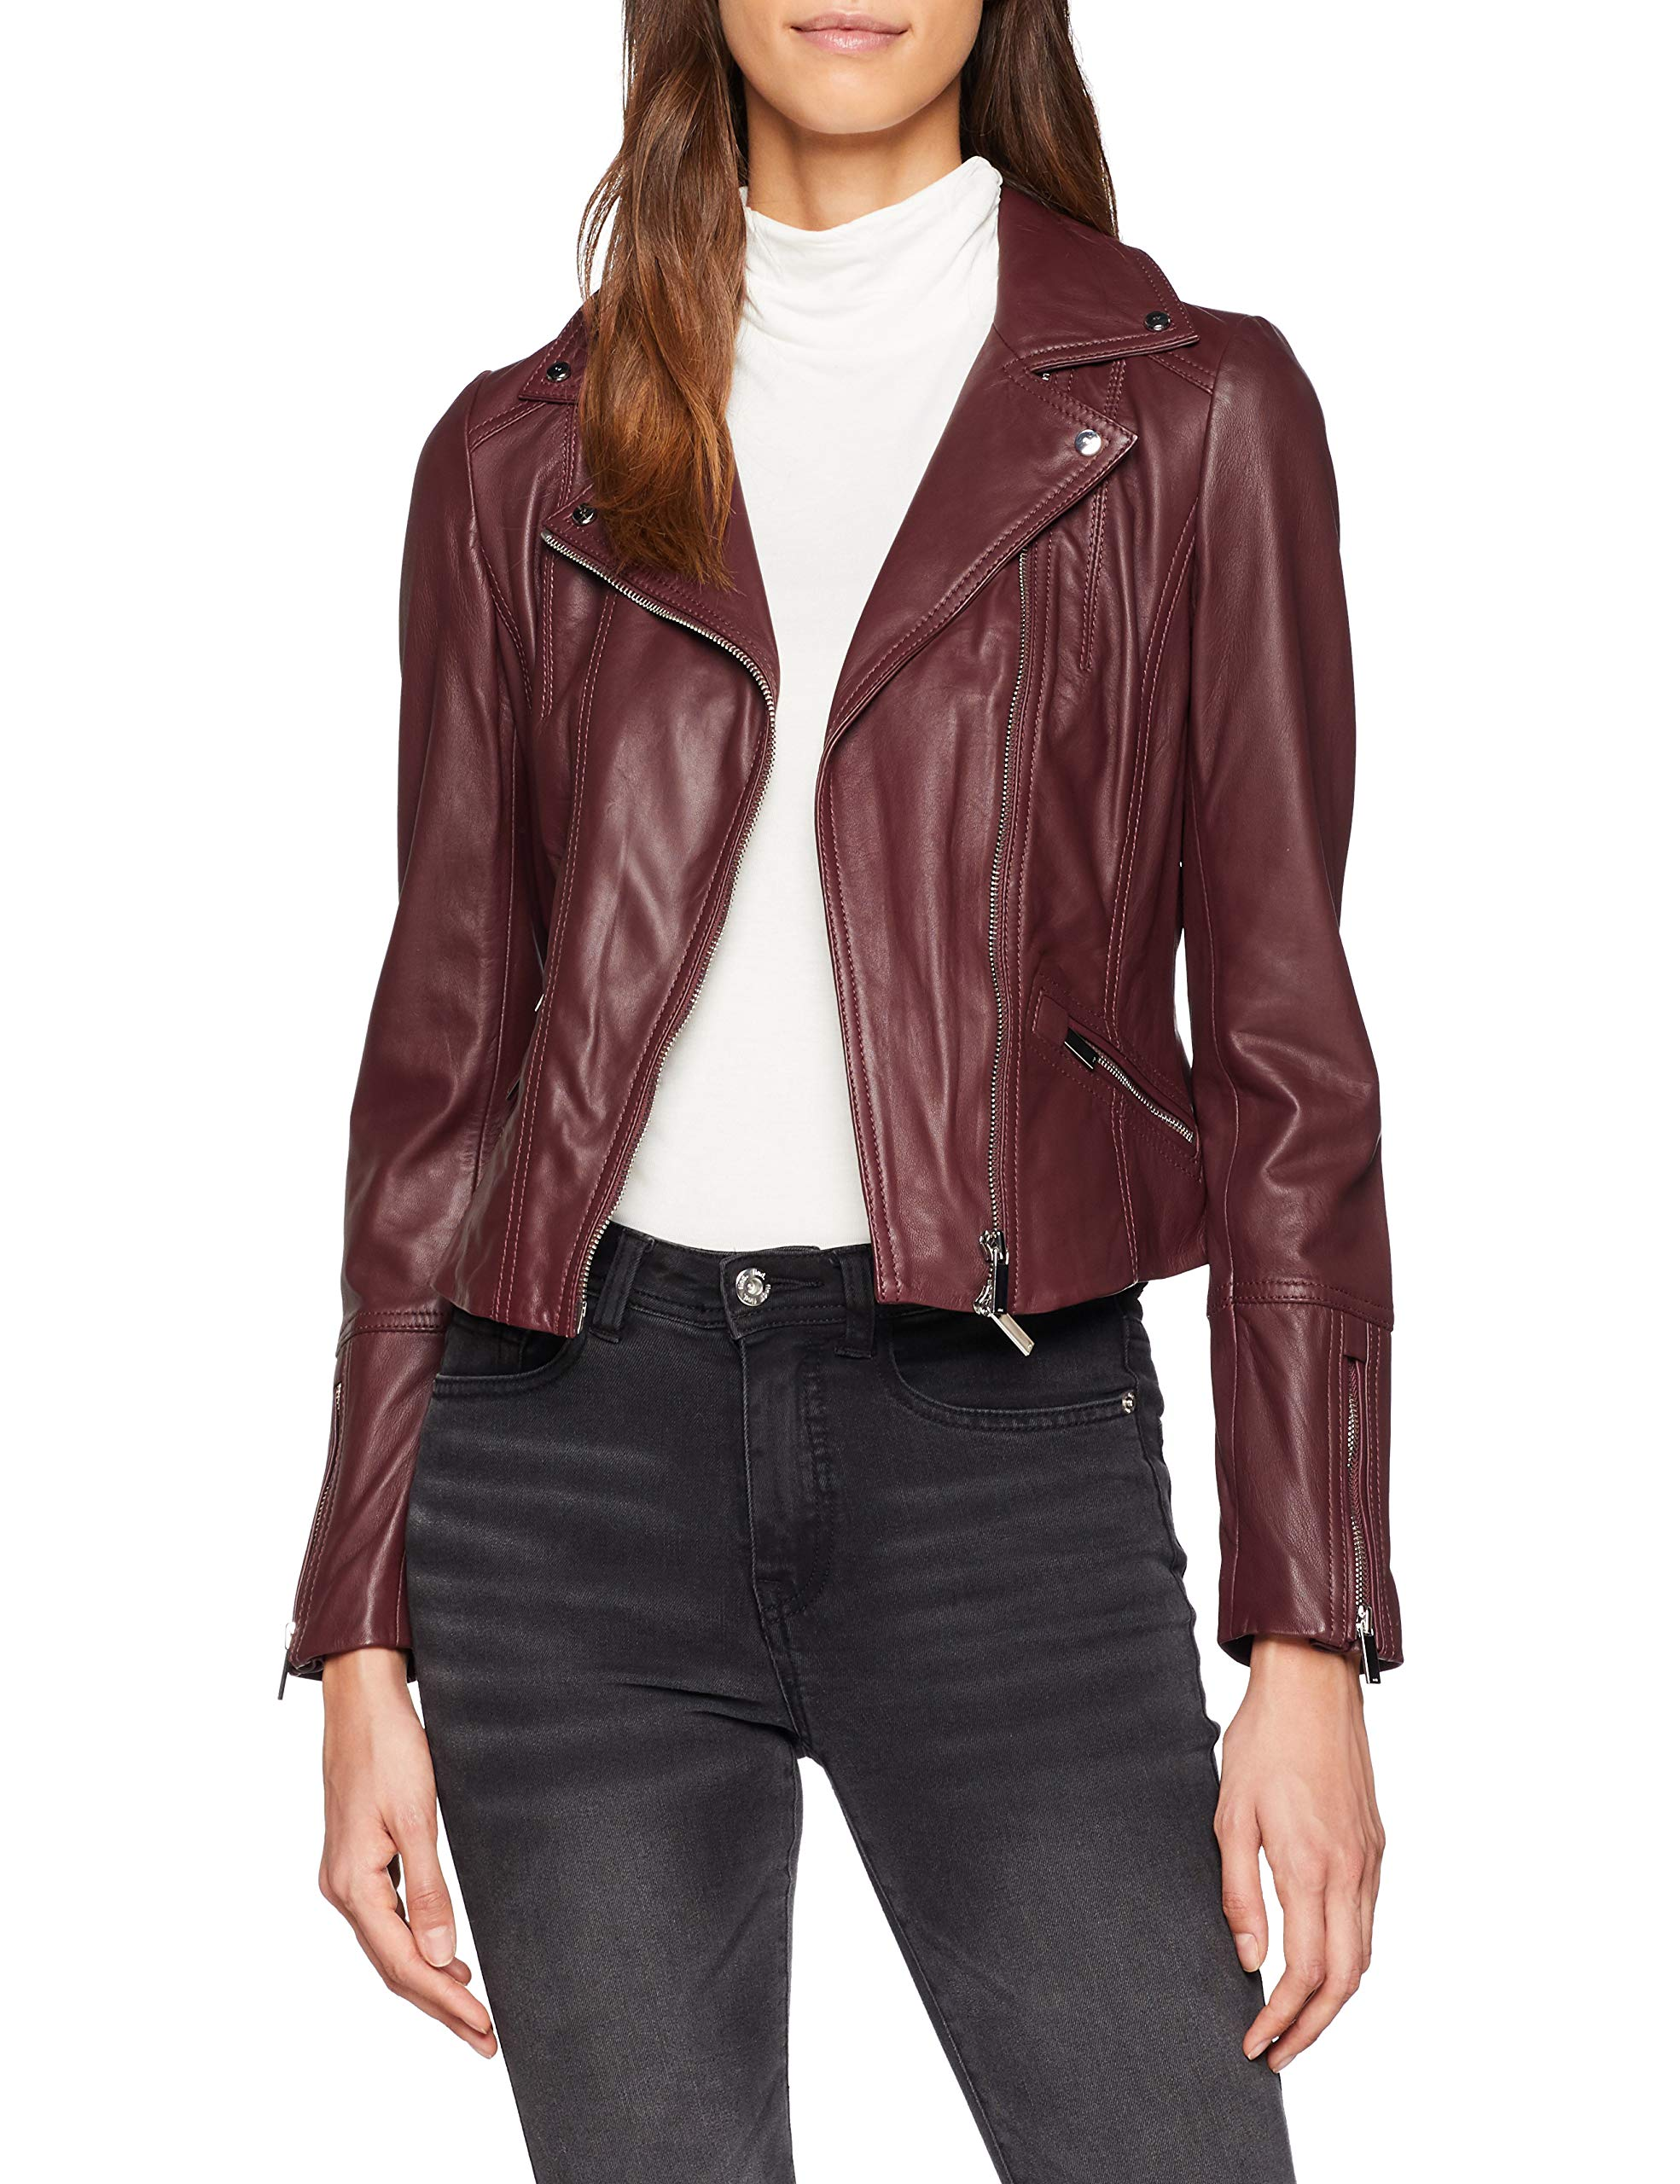 BlousonVioletpurple38taille Leather Millen Coloured 10Femme Jacket Karen FabricantUk 1FlJuTKc35